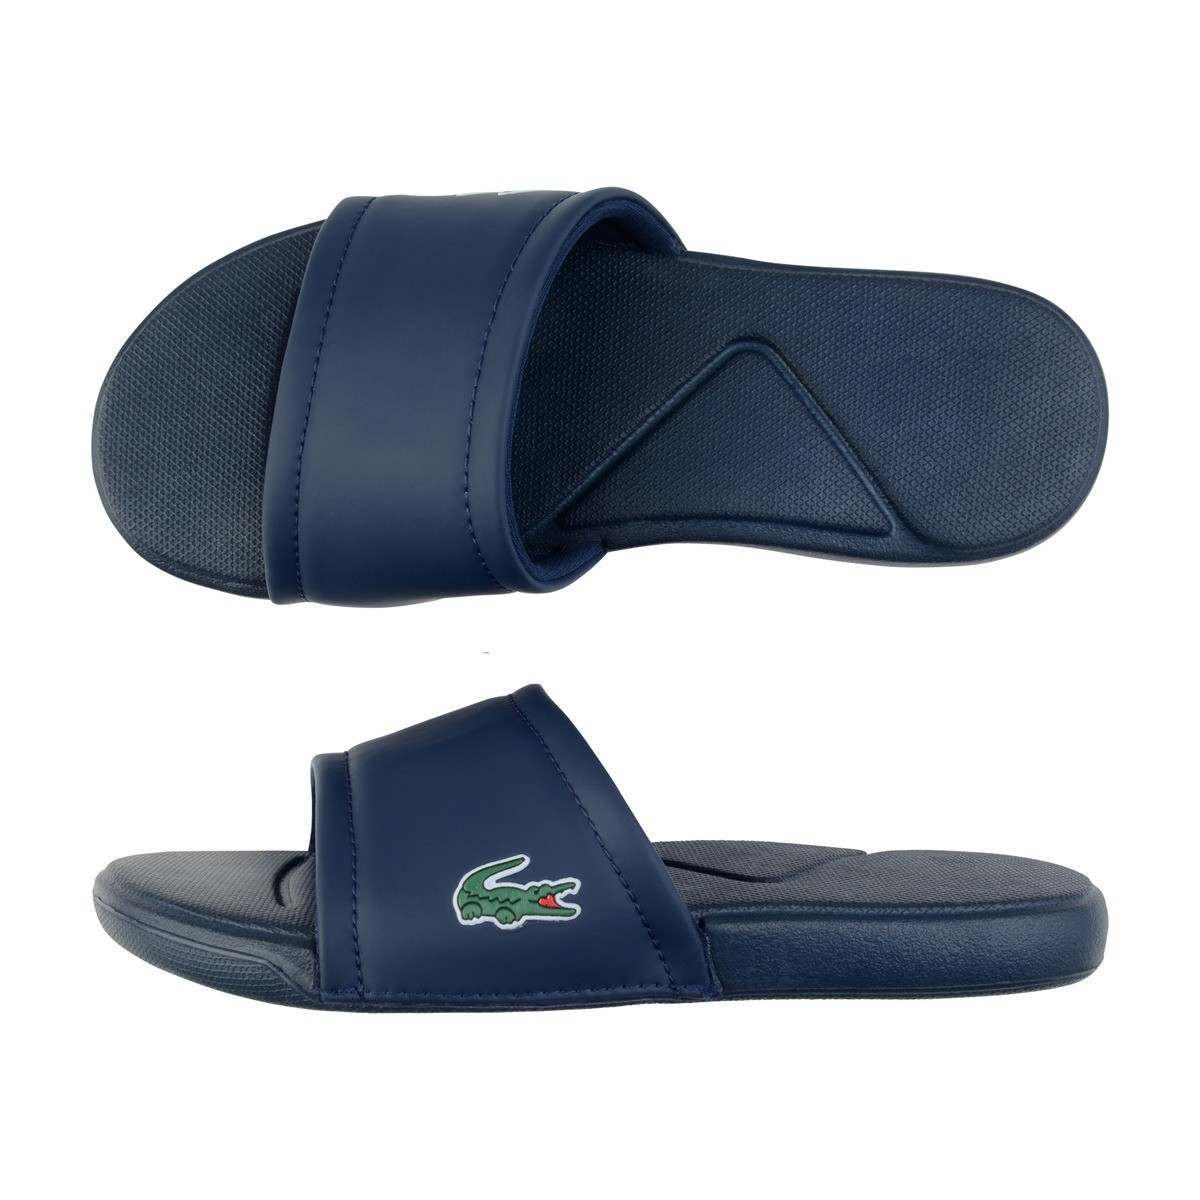 bf85eed4e1c6 LACOSTE lacoste navy slider 7-35CAJ001195K - Babies Blessings